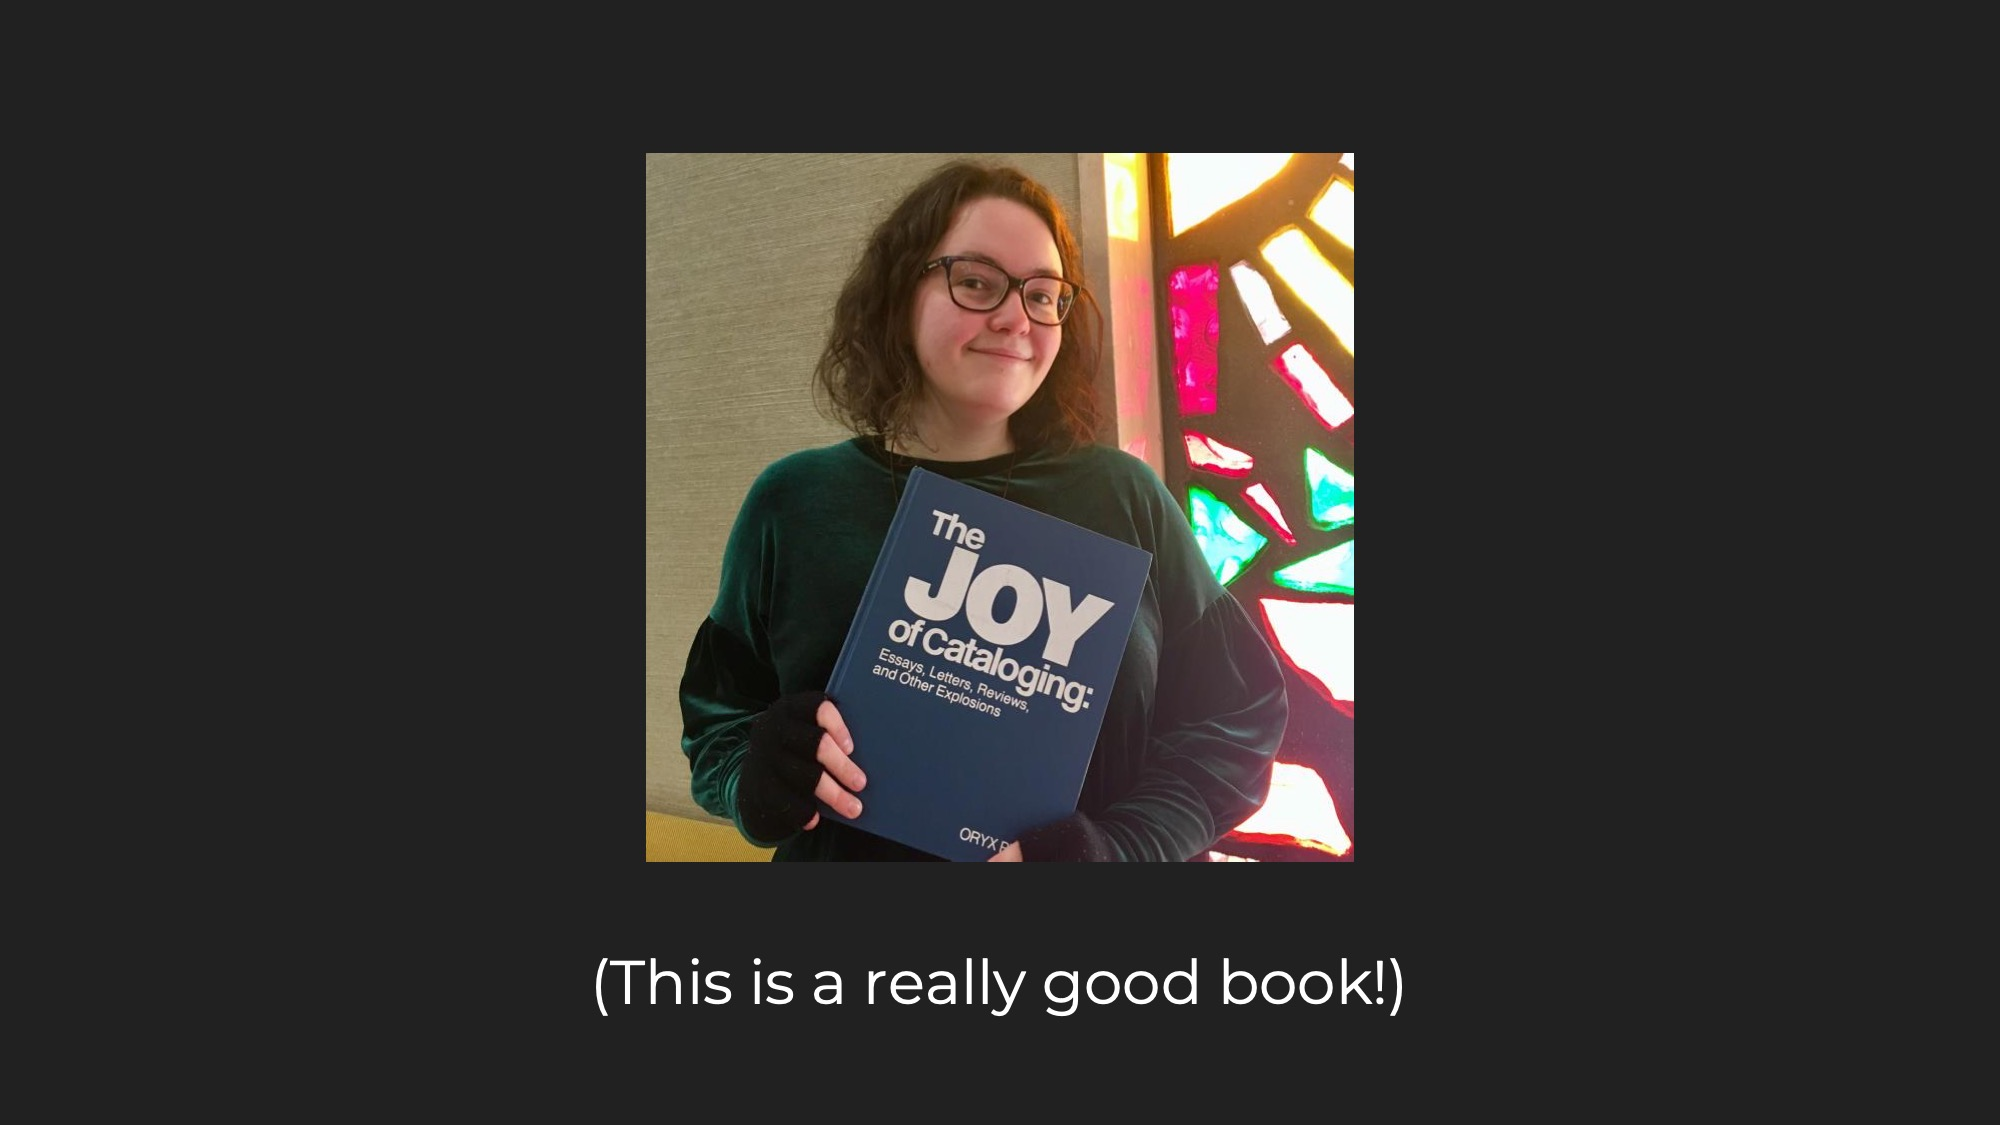 Picture of me holding the book 'The Joy of Cataloguing' by Sanford Berman, captioned 'This is a really good book!'